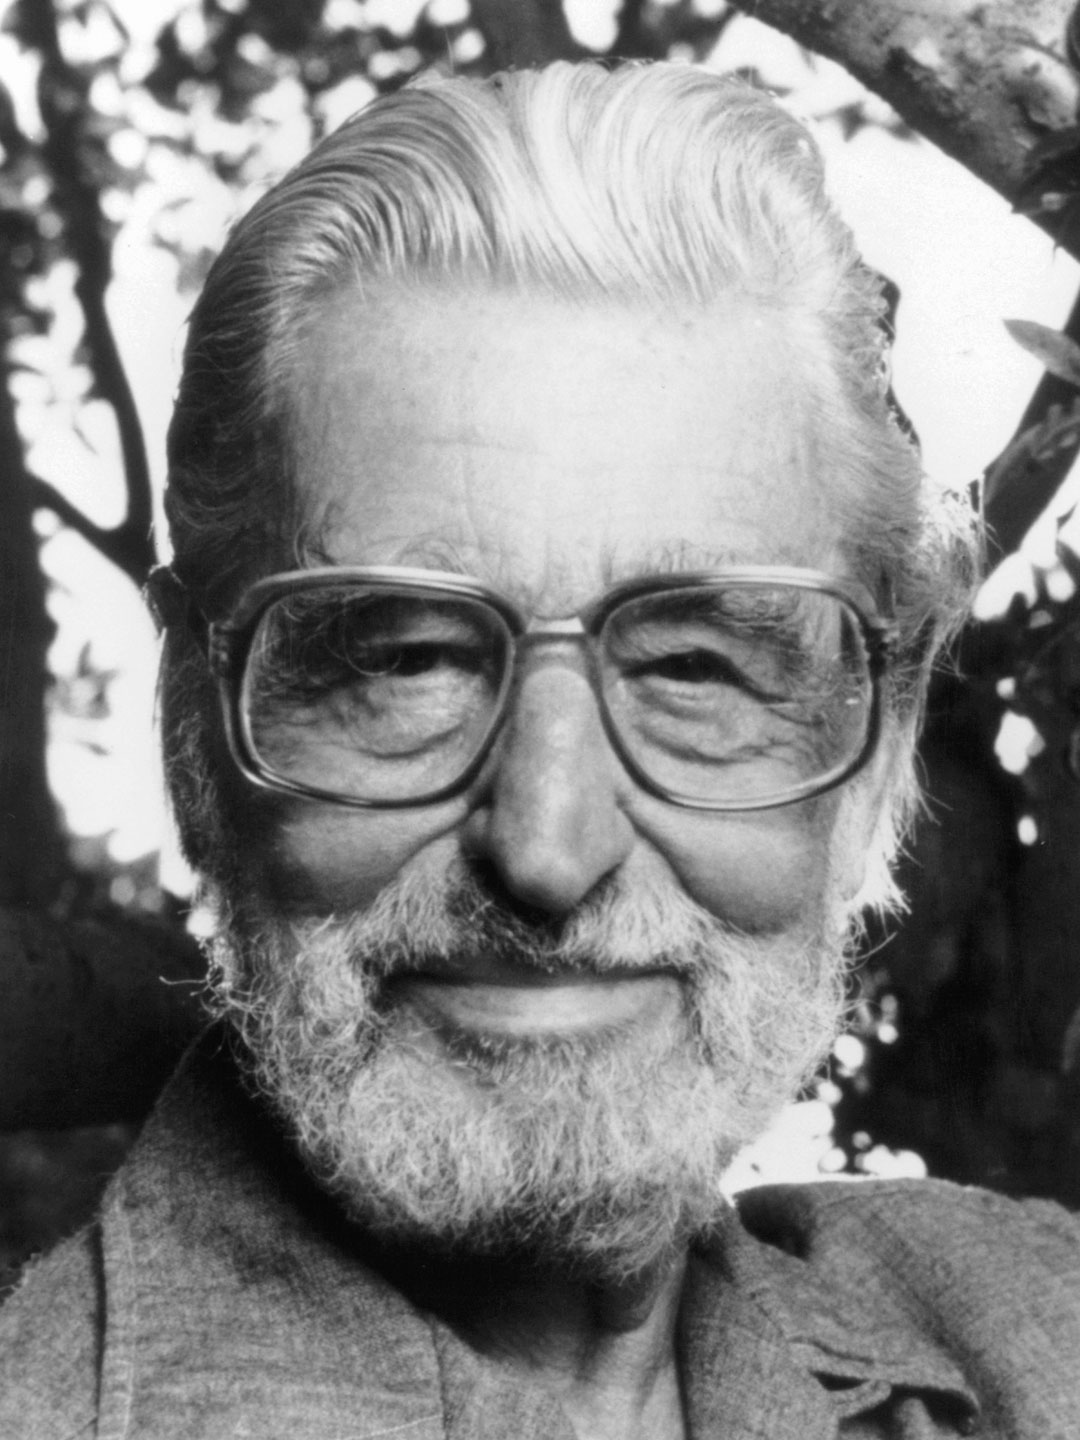 Theodor S Geisel, known to his millions of fans the world over as Dr. Seuss in a publicity portrait from the film biography 'In Search Of Dr. Seuss', 1994. (Photo by TNT/Getty Images)